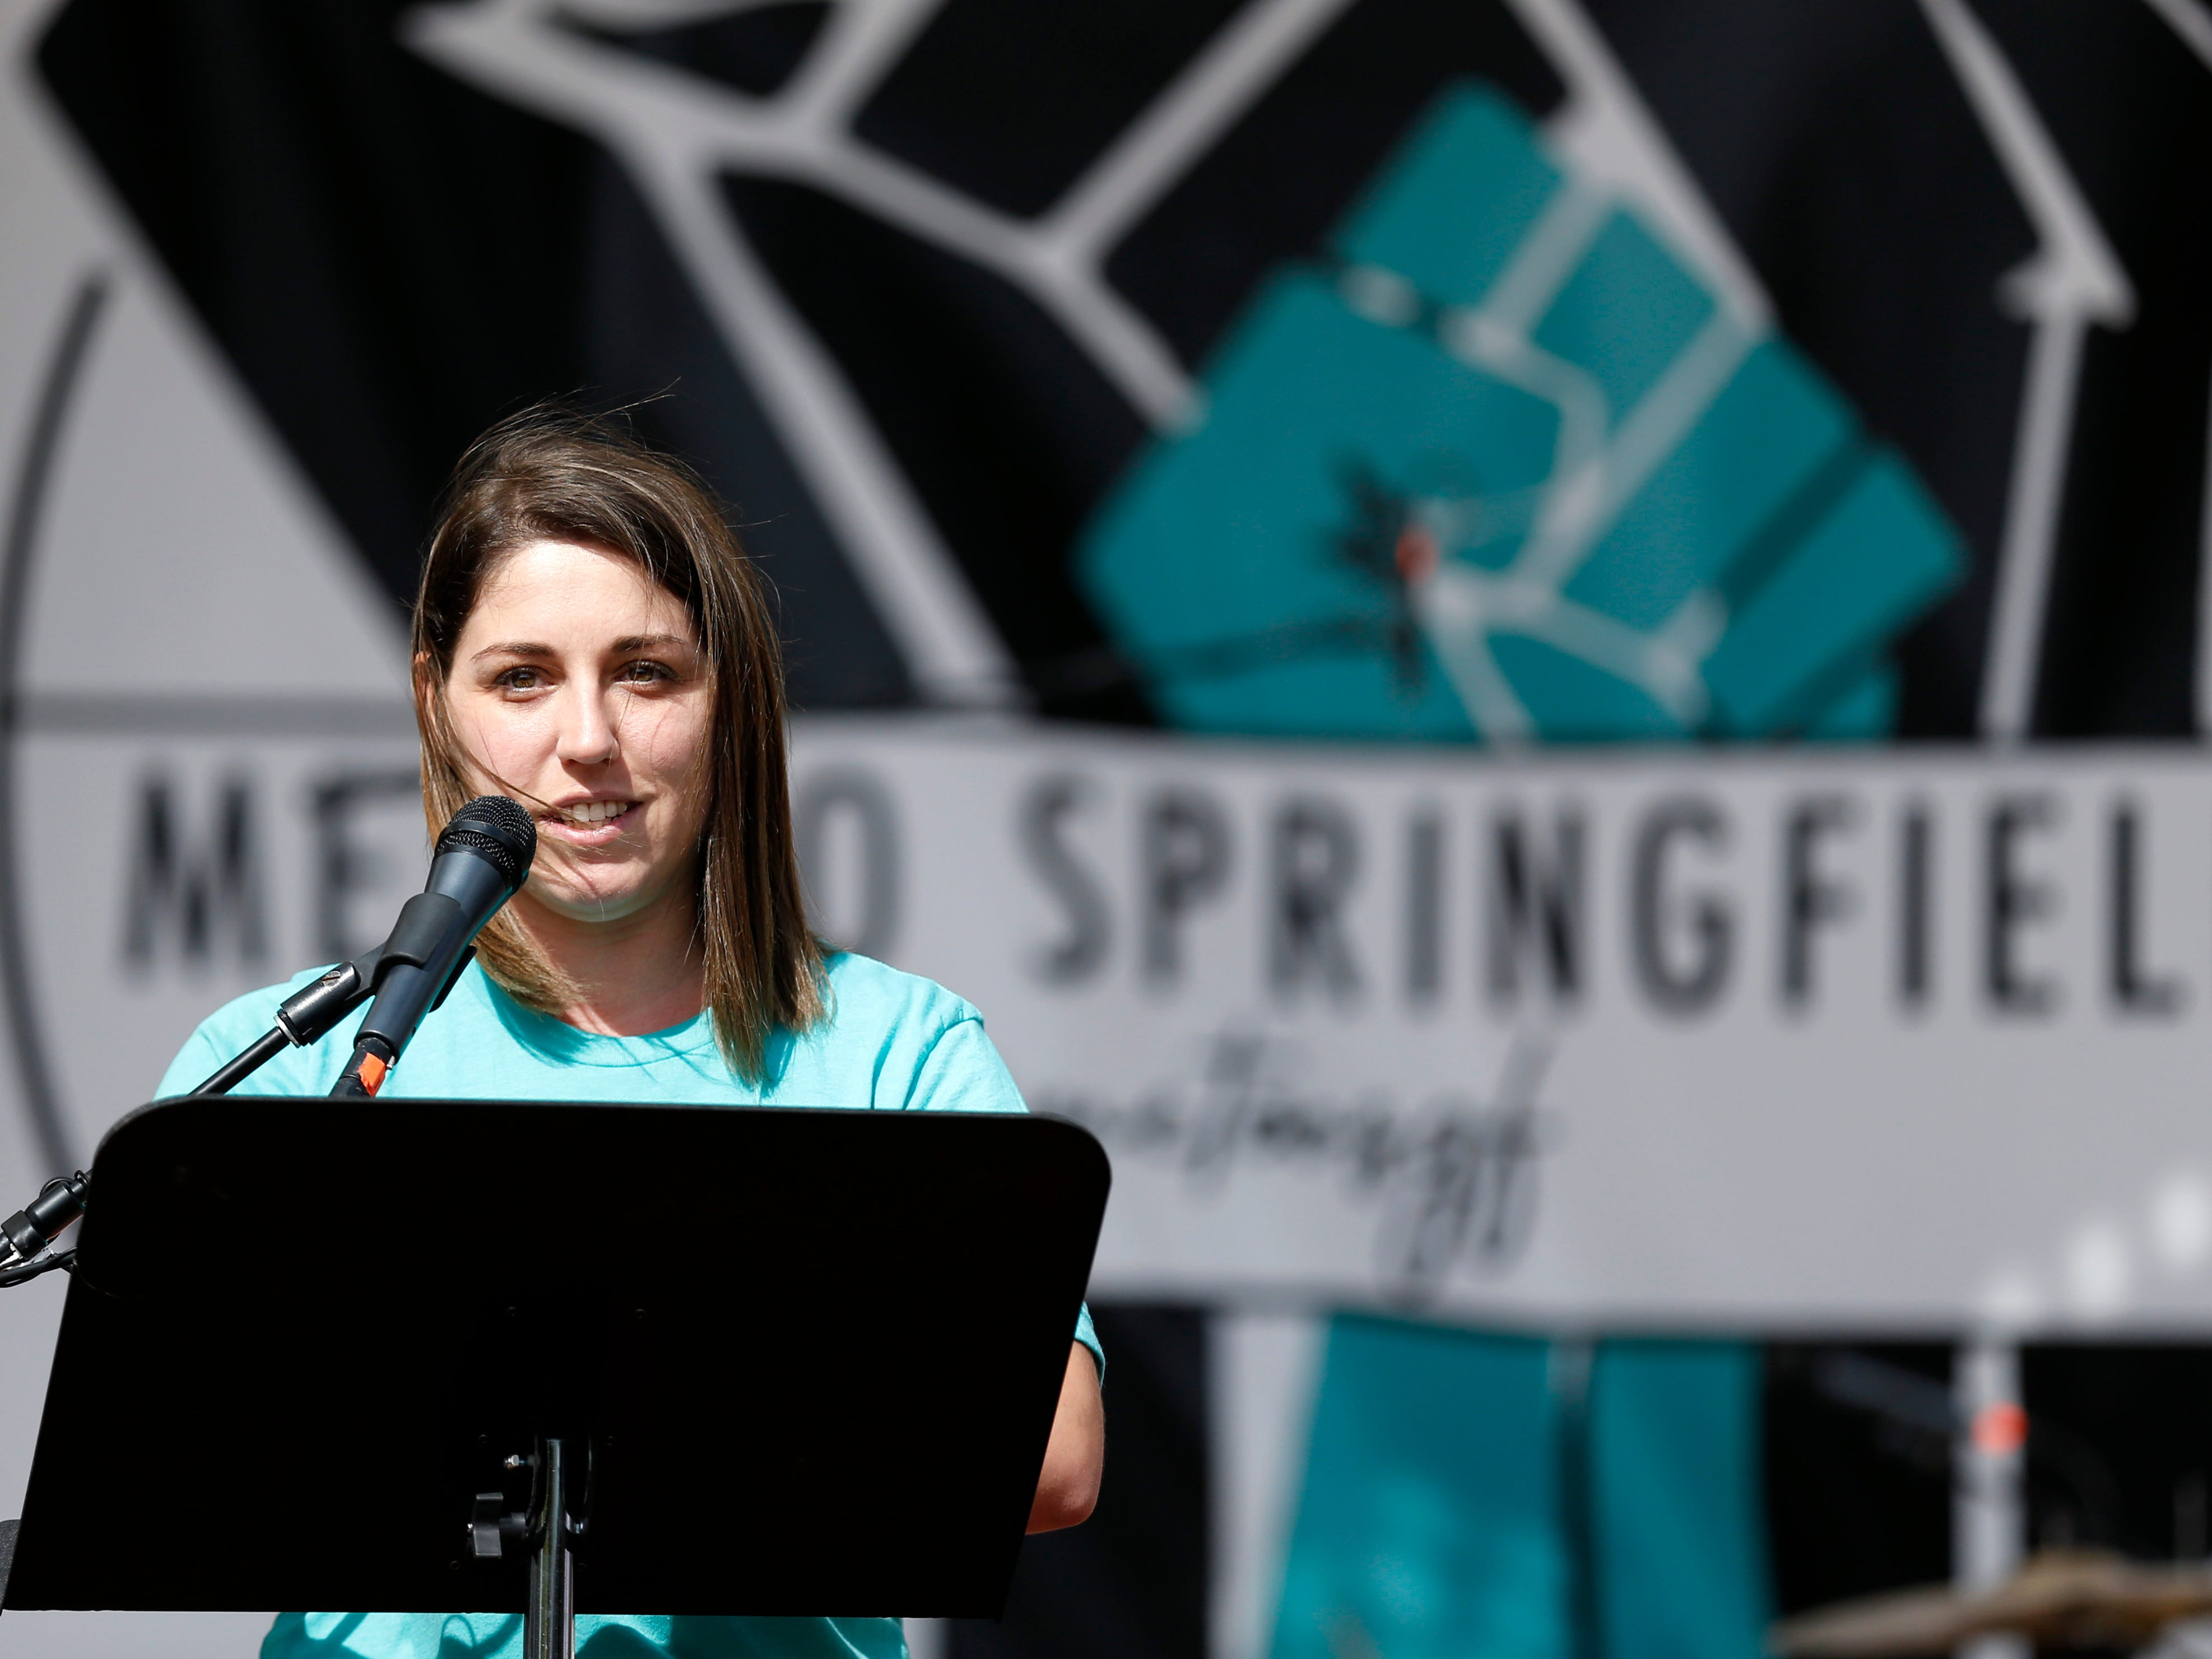 Rep. Crystal Quade, D-Springfield speaks to a crowd of a few hundred people at the Me Too Springfield rally in downtown Springfield on Saturday, Oct. 6, 2018.